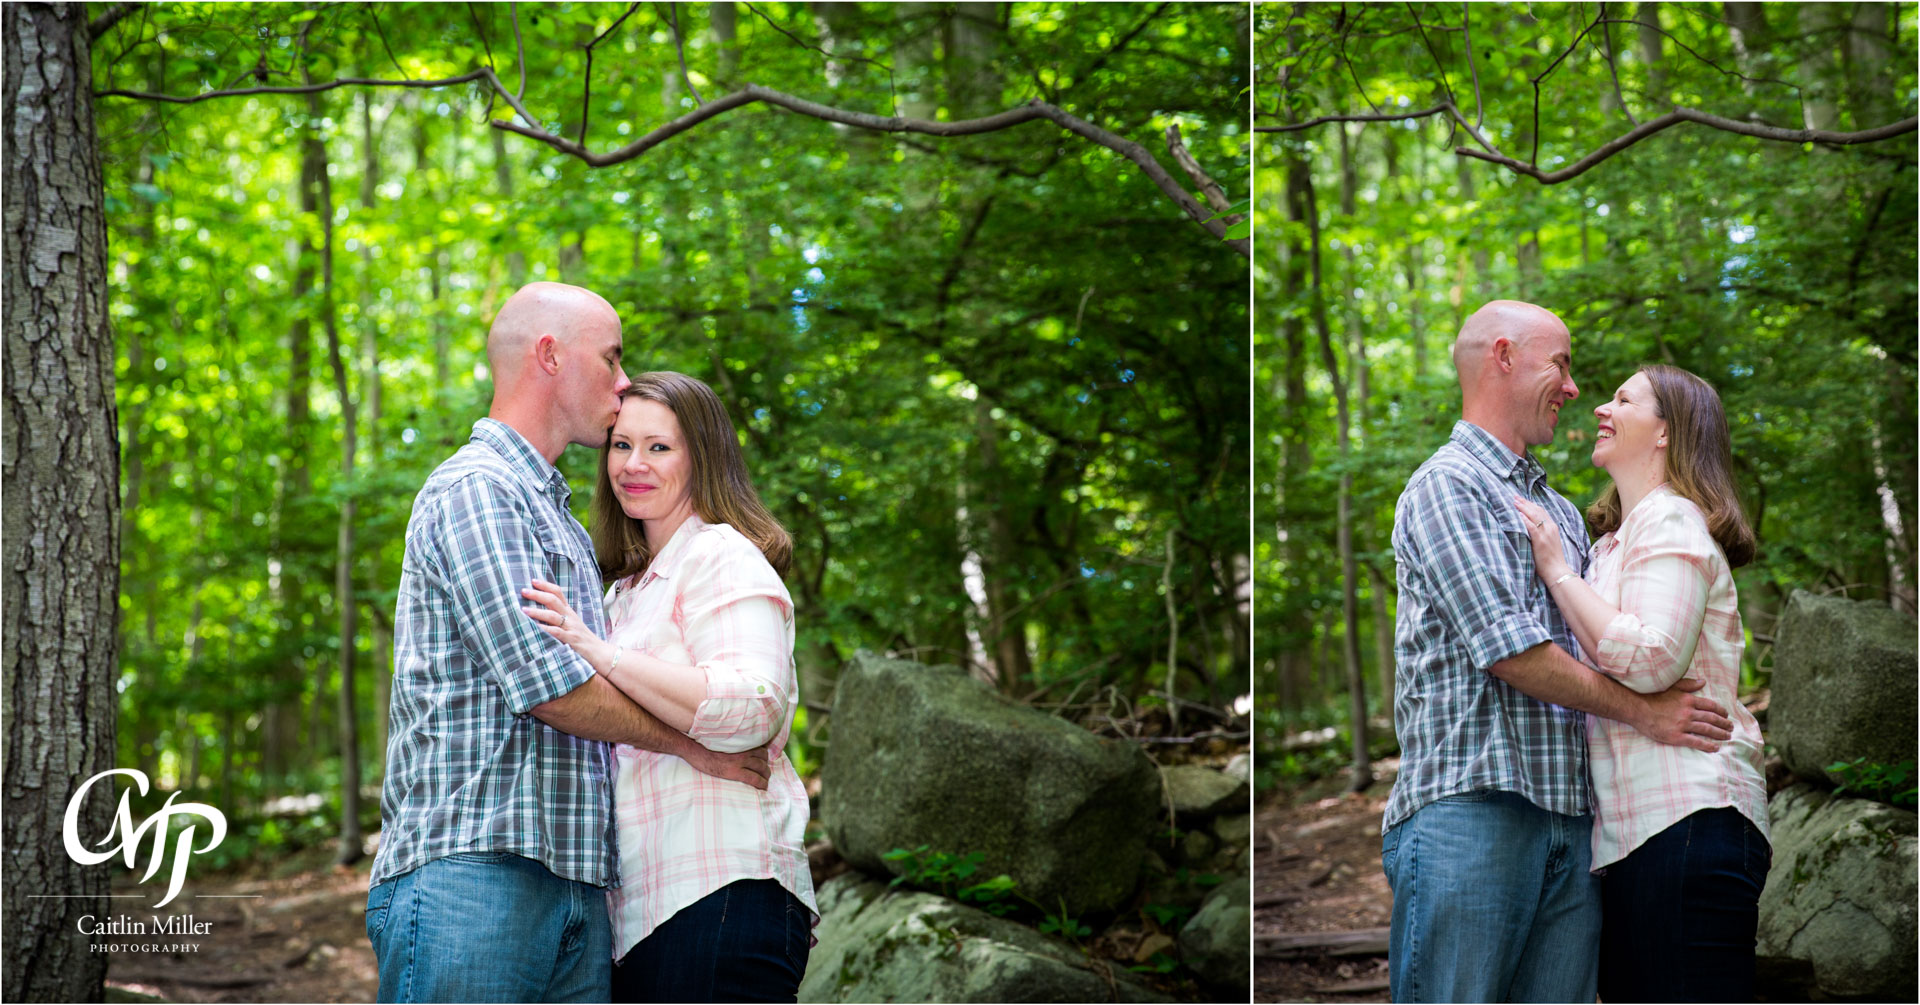 kitterman-1.jpg from Kyla and Bill's sweet summer engagement at Mianus River Park in Stamford CT by Saratoga Wedding Photographer Caitlin Miller Photography. Lake George Wedding Photographer. Stamford wedding photographer. Connecticut wedding photographer. Greenwich Wedding Photographer. Saratoga Wedding Photographer